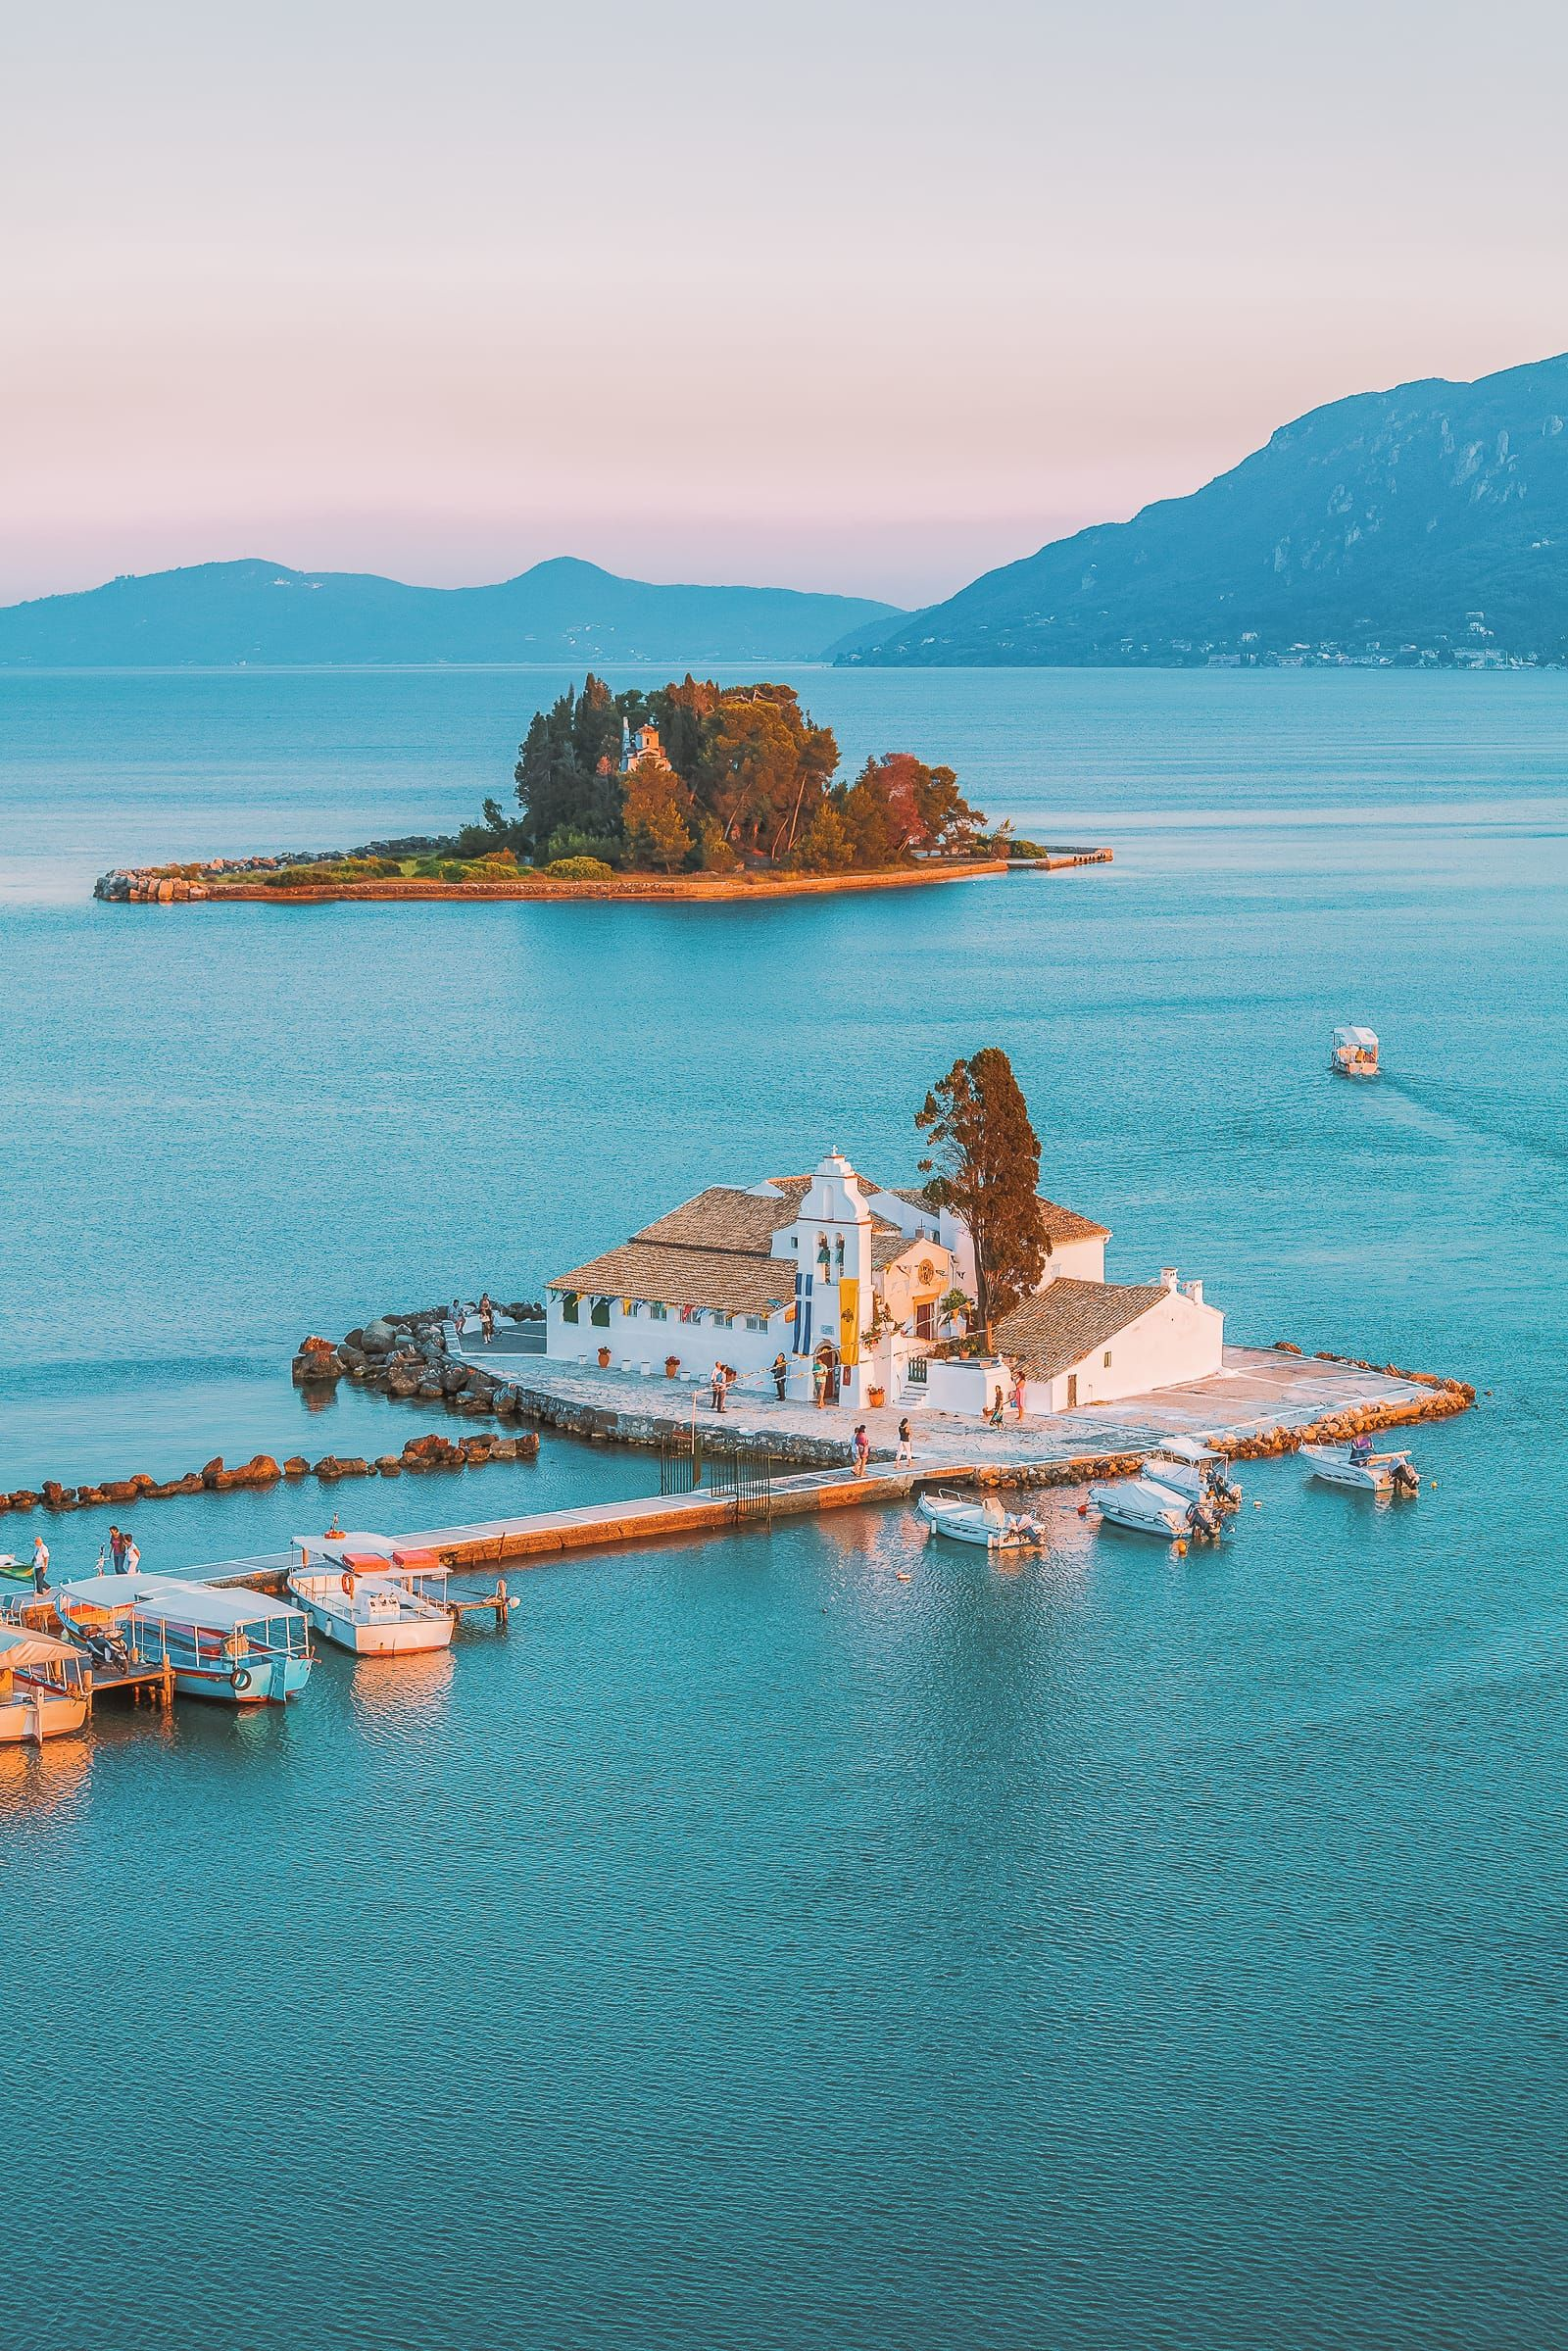 19 Beautiful Islands In Greece You Have To Visit - Hand Luggage Only - Travel, Food & Photography Blog